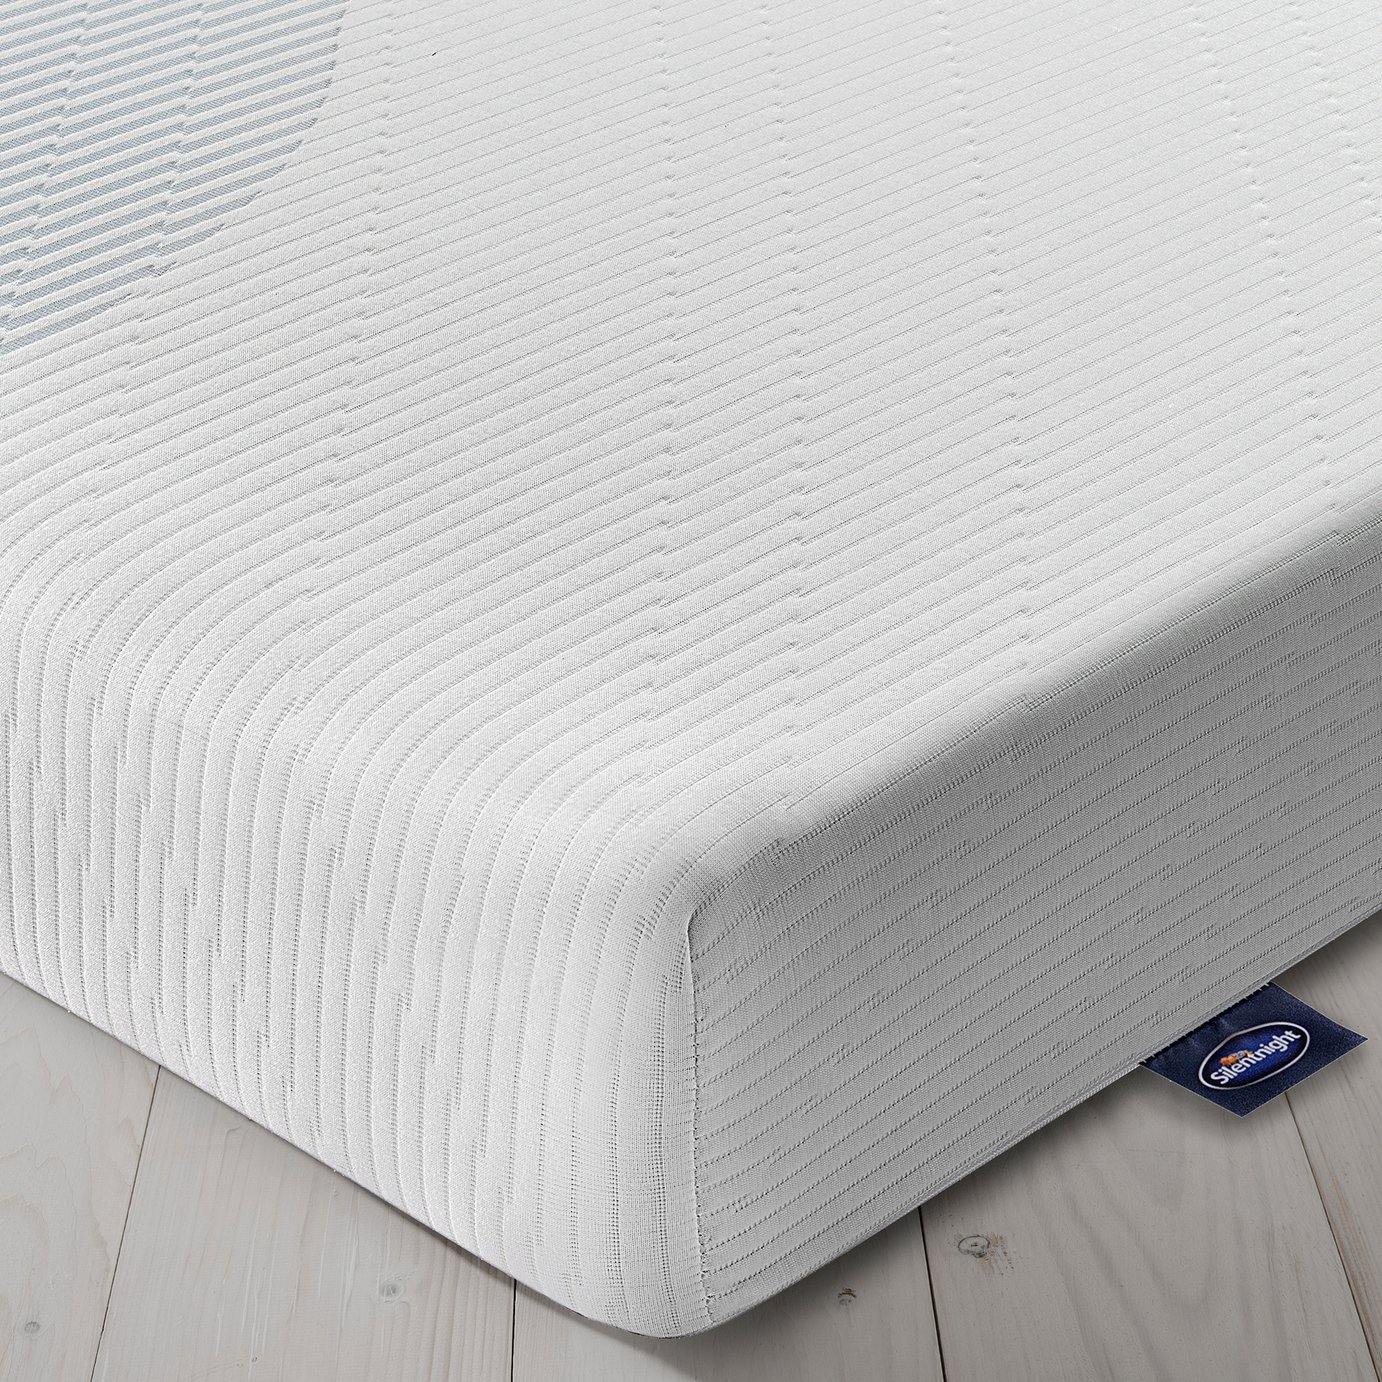 Silentnight Memory Foam Rolled Mattress - Small Double